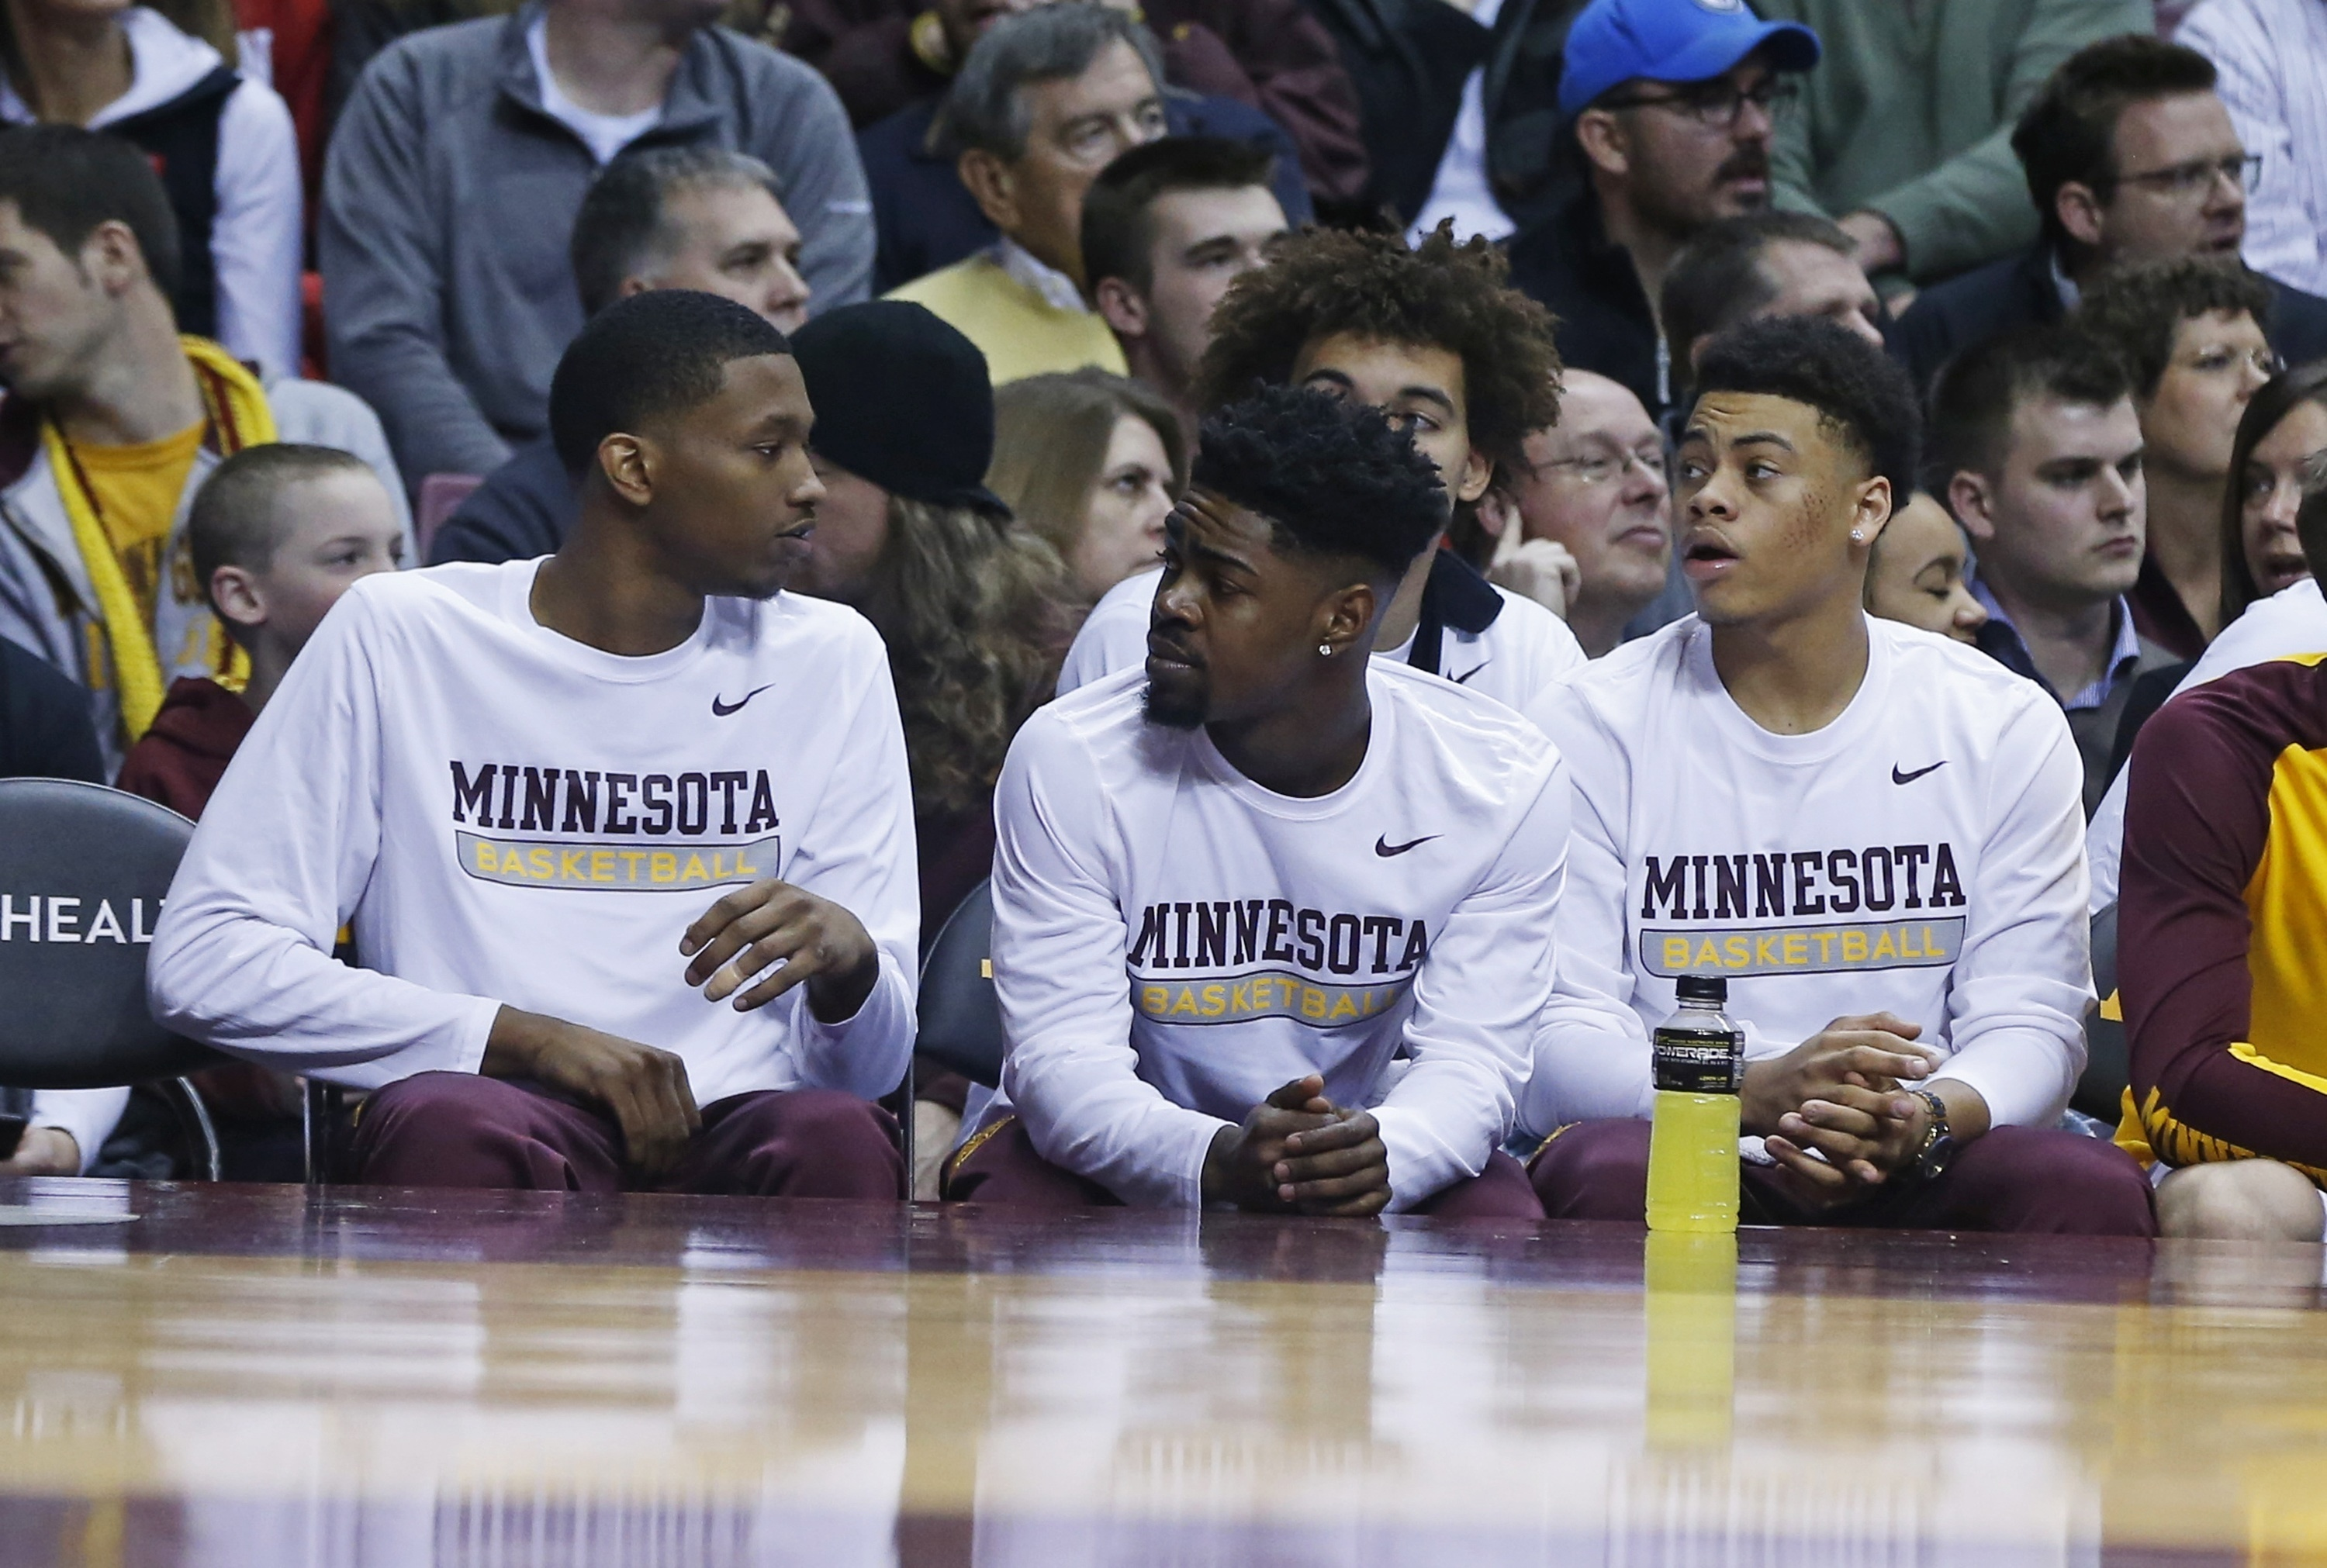 Minnesota's Dupree McBrayer, left, Kevin Dorsey, Jr., center and Nate Mason, right, are benched during an NCAA college basketball game Wednesday, March 2, 2016, in Minneapolis. Coach Richard Pitino announced Tuesday that the three will be suspended for th